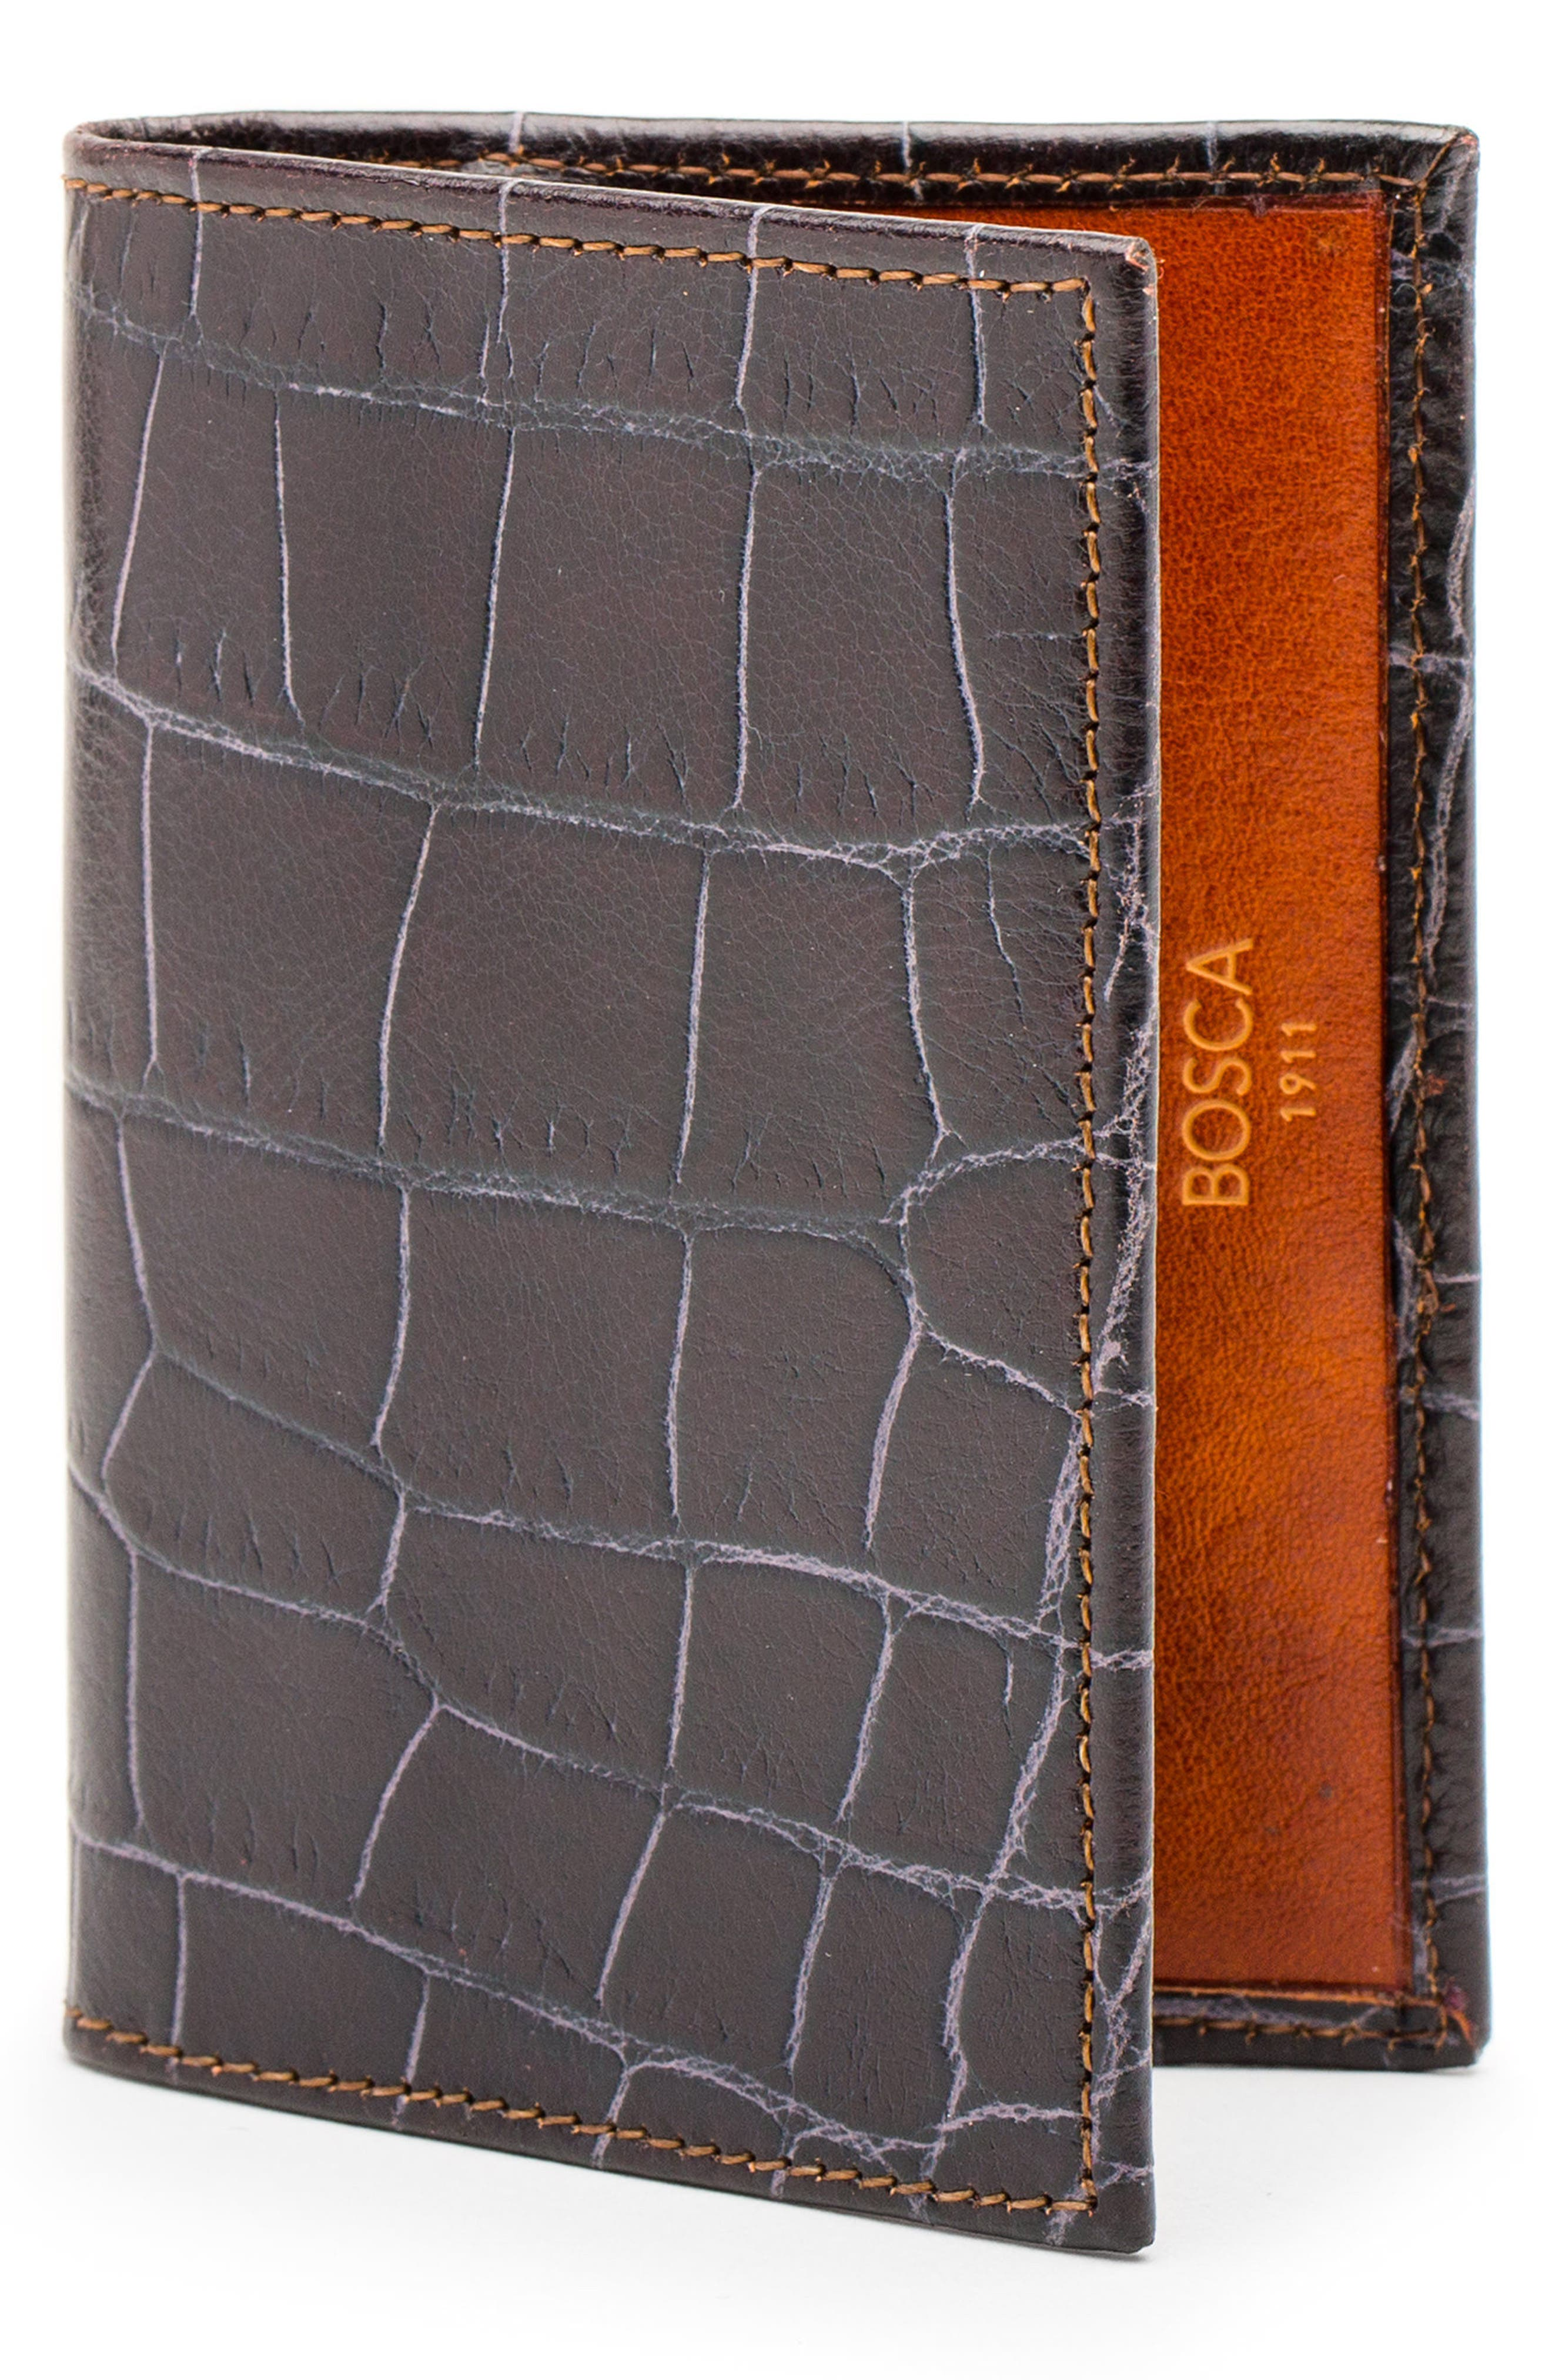 Bosca Embossed Leather Card Case